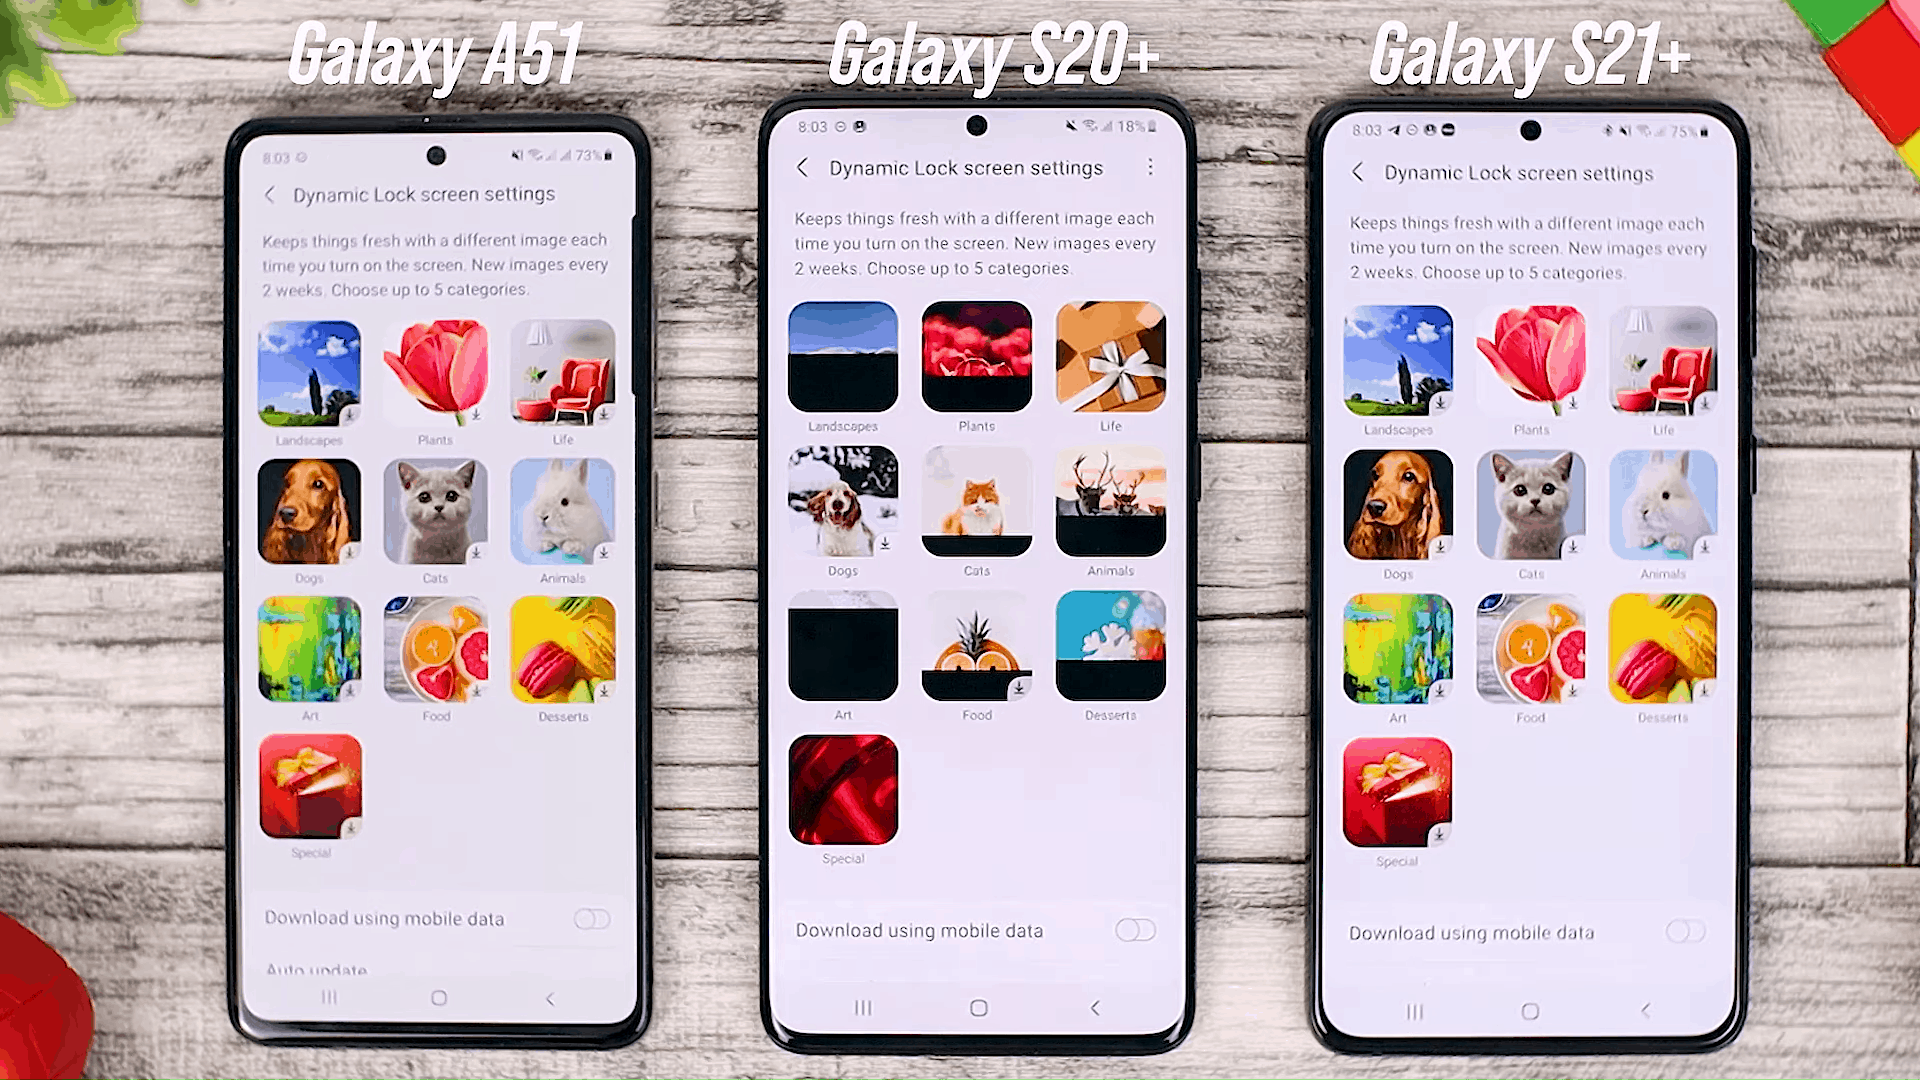 Dynamic Wallpaper Category - Fitur One UI 3.0 di Galaxy A51 dan Perbandingannya dengan Galaxy S20+ dan One UI 3.1 di Galaxy S21+